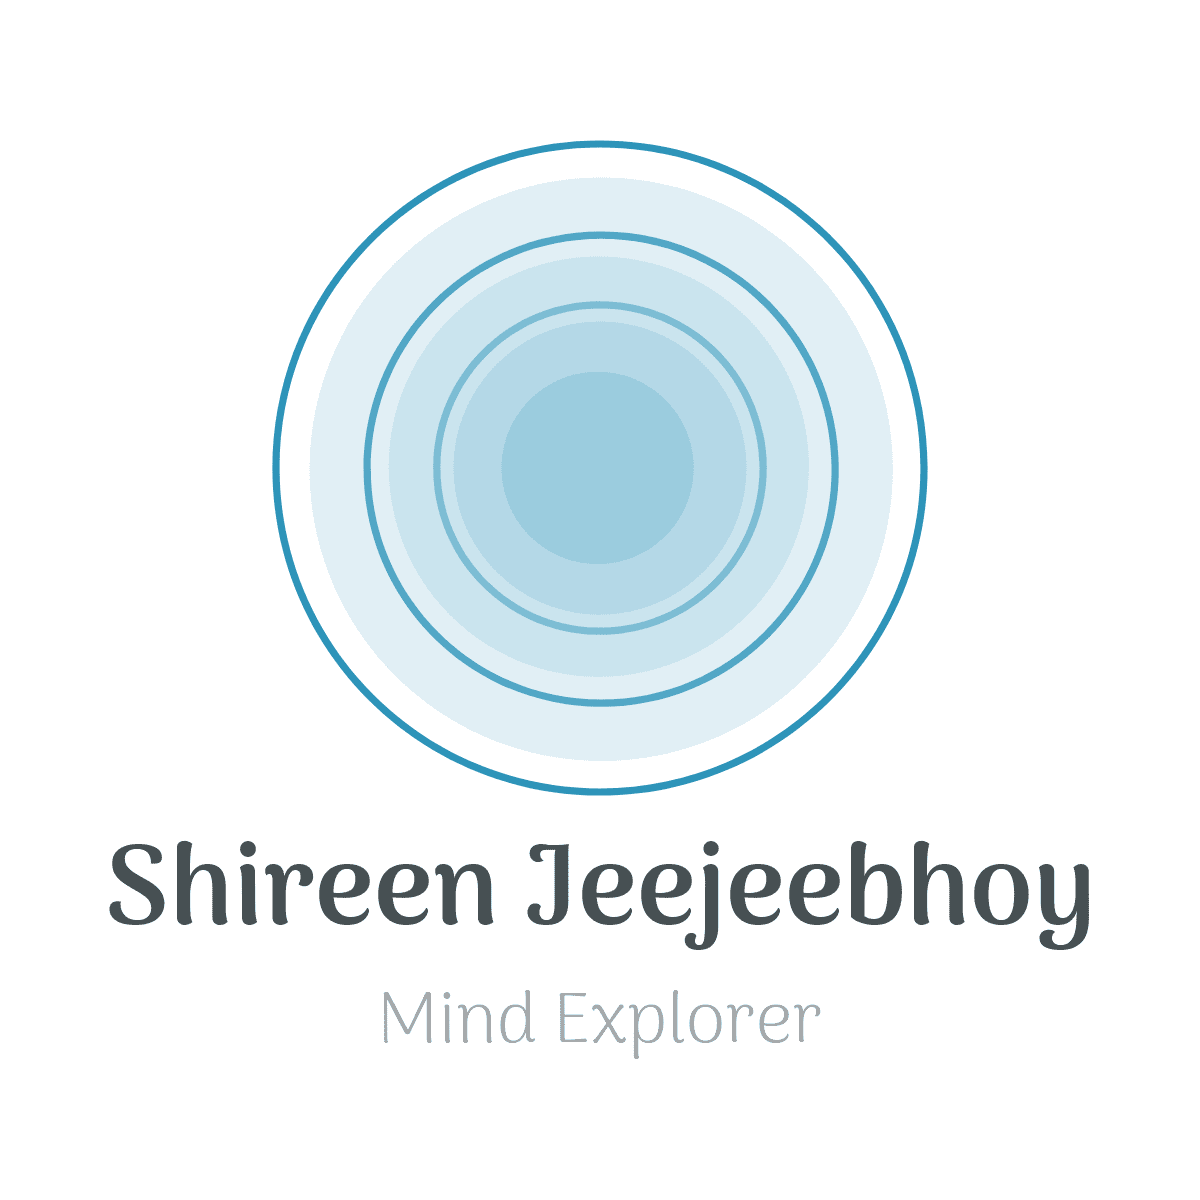 Shireen Jeejeebhoy Mind Explorer Logo